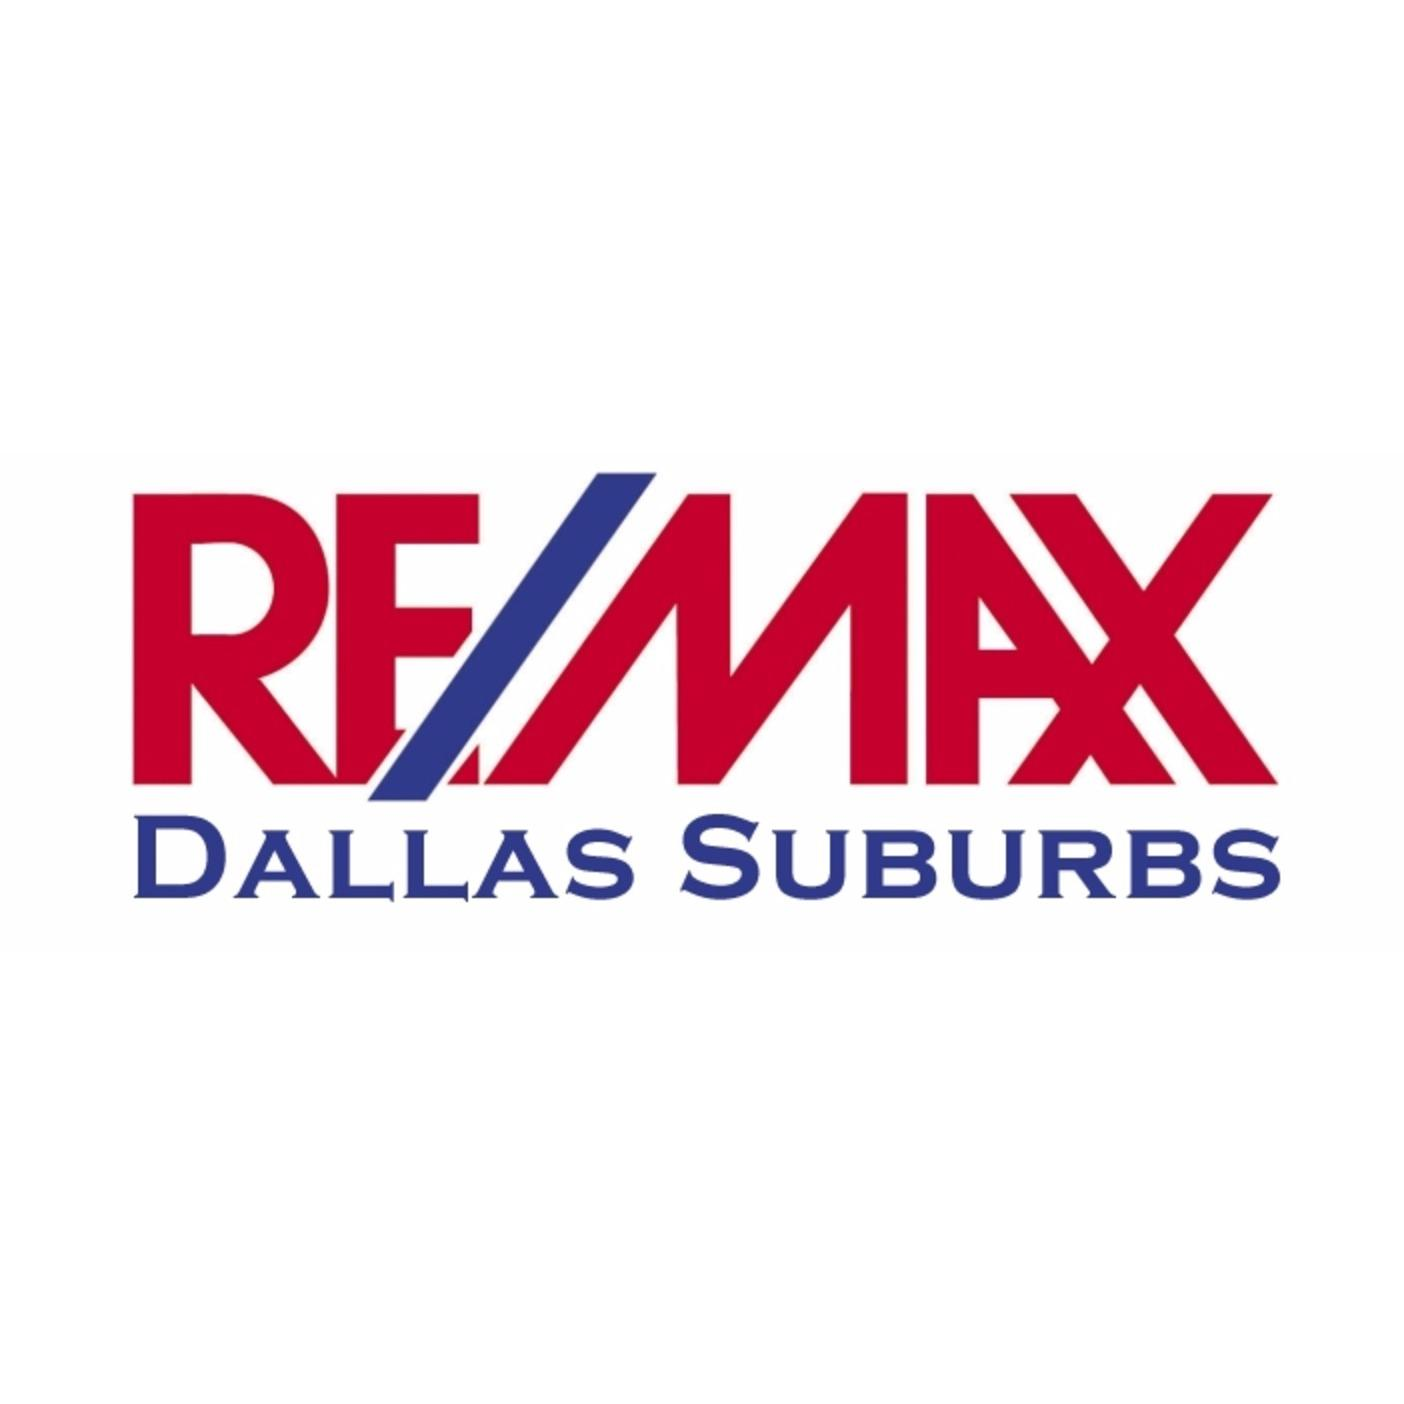 Fatima Mattingley | RE/MAX Dallas Suburbs